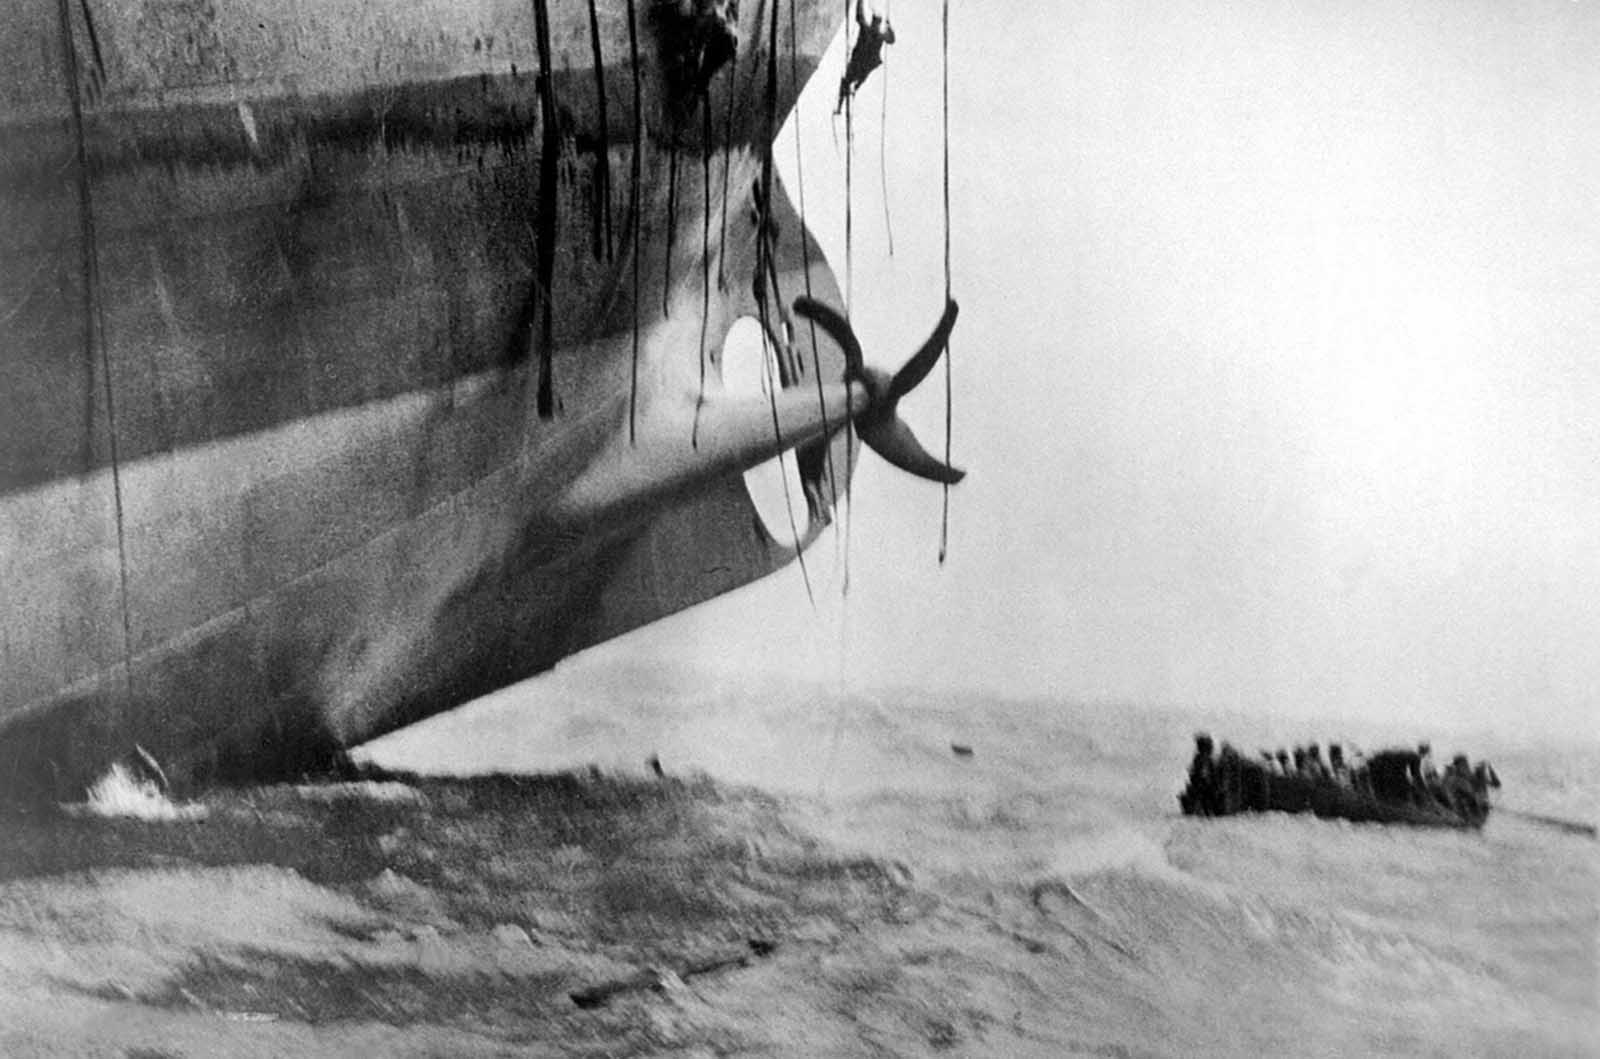 Last minute escape from a vessel torpedoed by a German sub. The vessel has already sunk its bow into the waves, and her stern is slowly lifting out of the water. Men can be seen sliding down ropes as the last boat is pulling away. Ca. 1917.